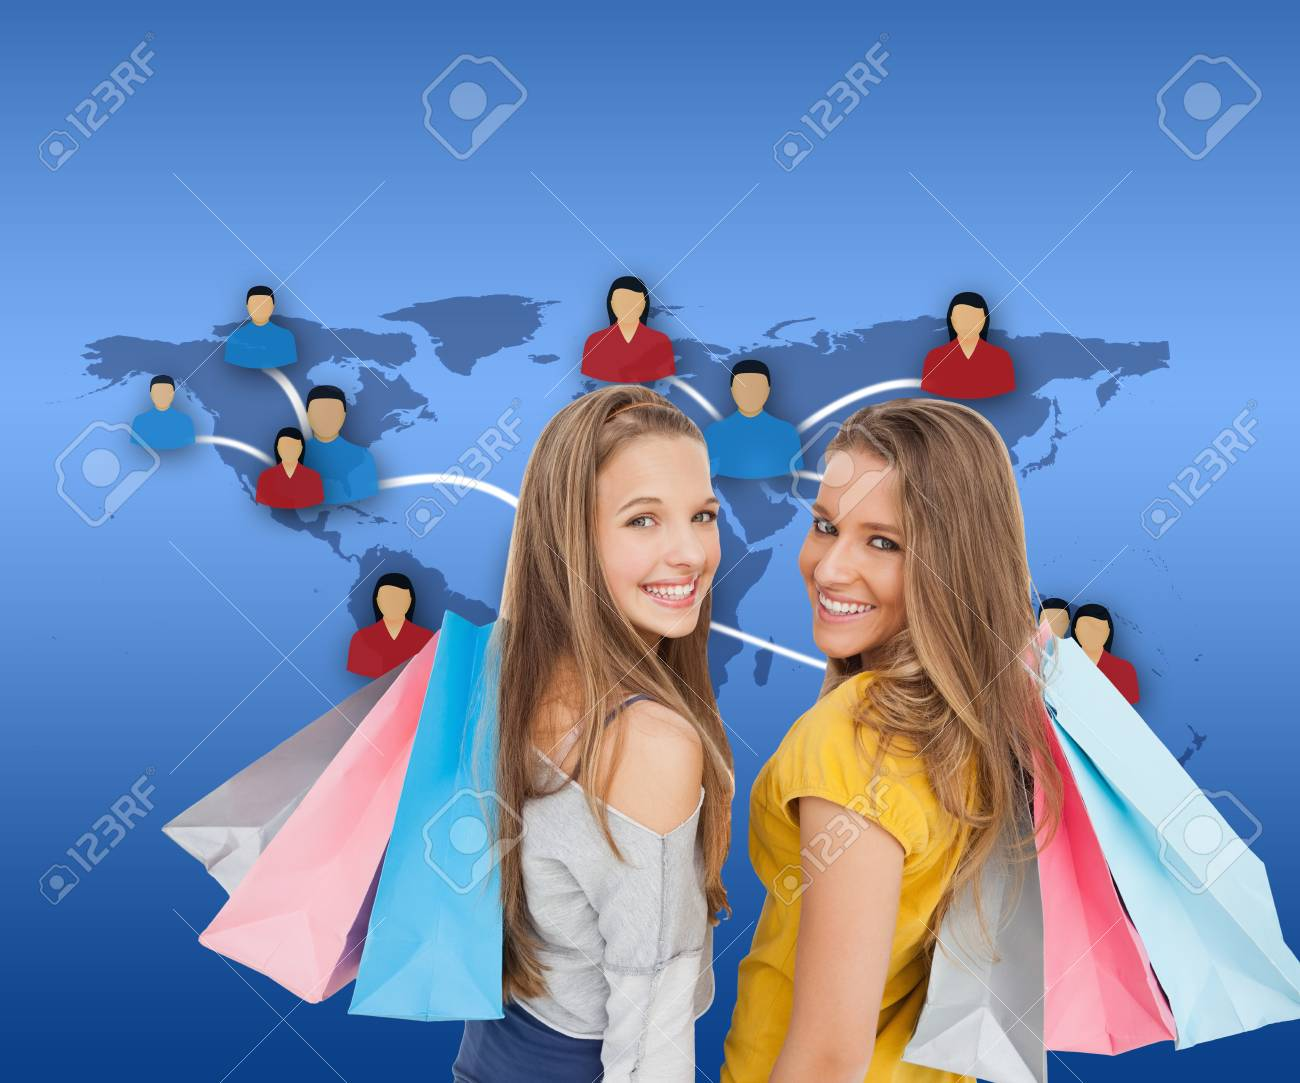 Composite image of two young women with shopping bags against white background Stock Photo - 26906738